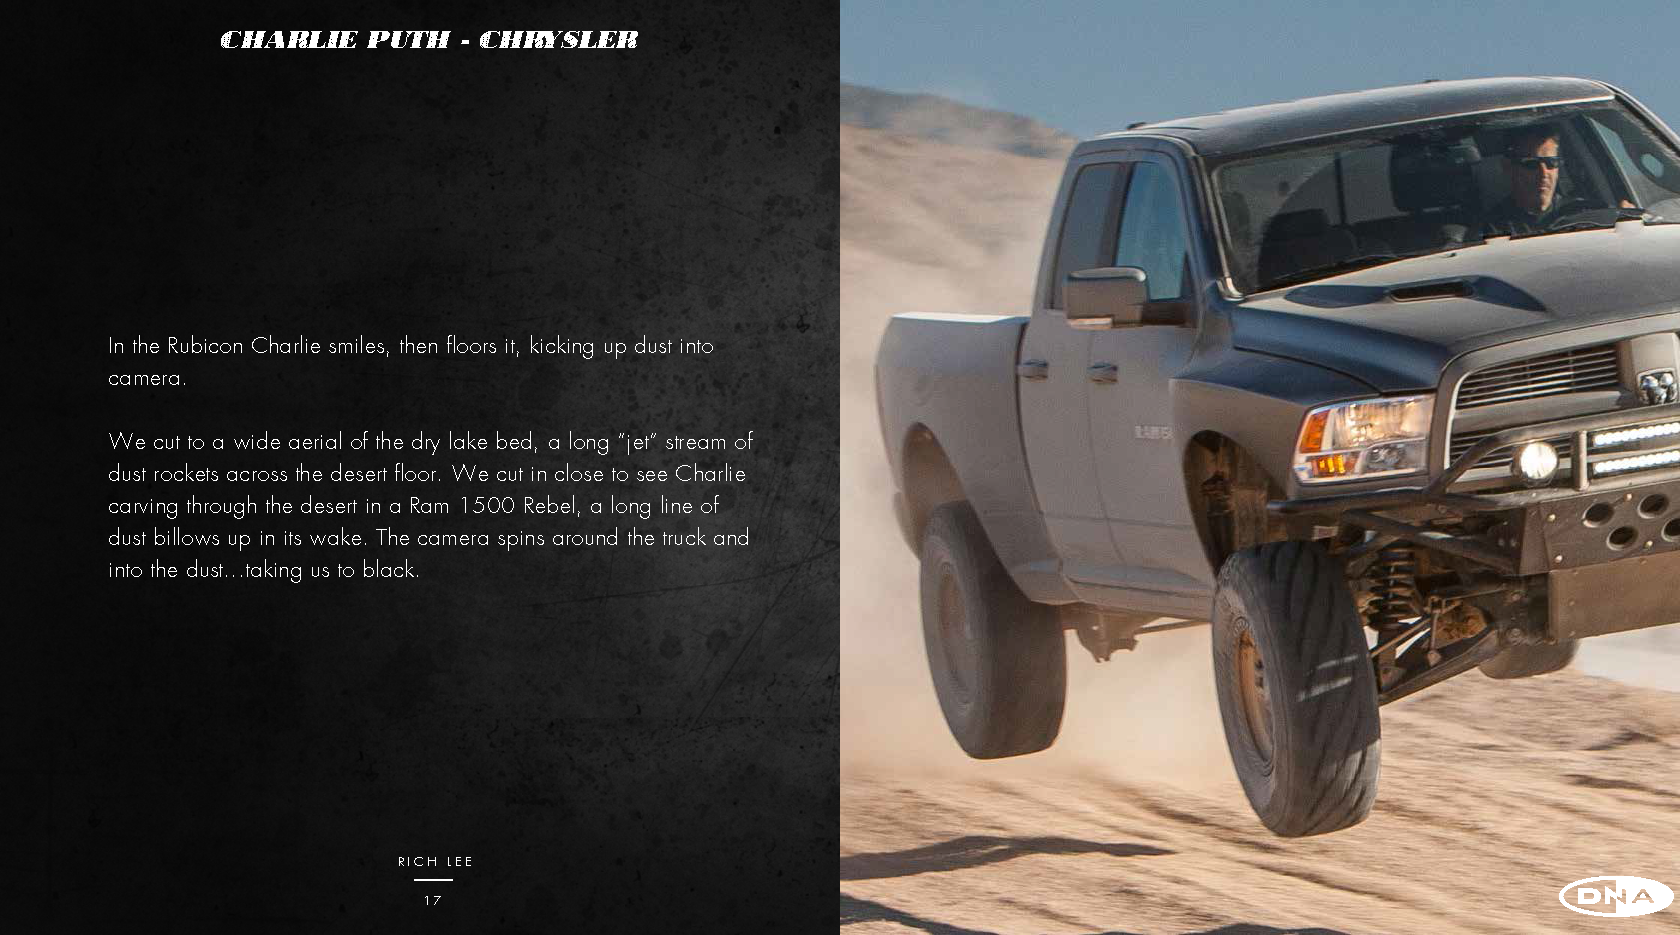 CP_Chrysler_101215_1_Page_17.png